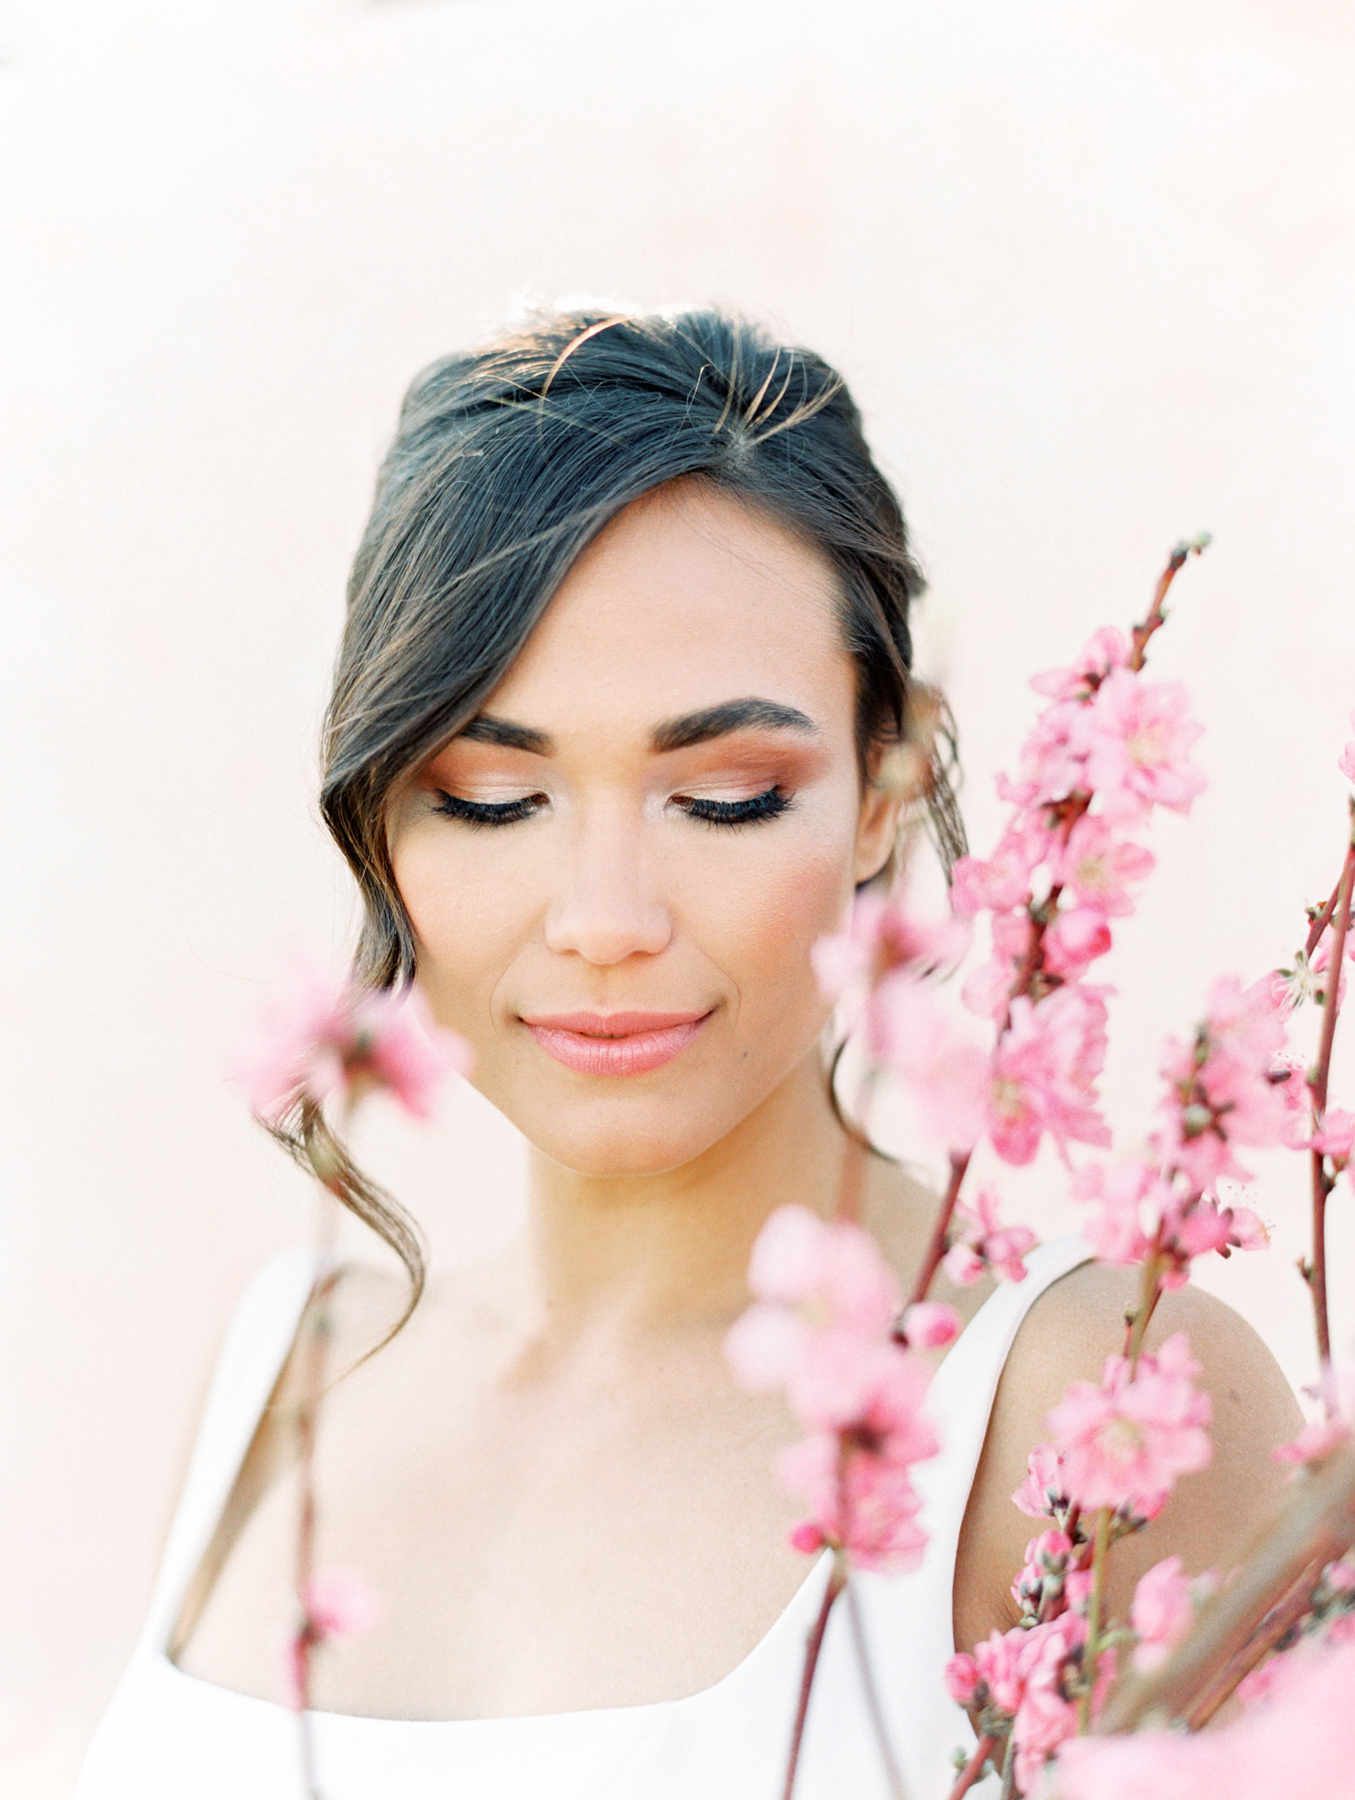 Bridal makeup with updo and some curls hanging down. Shot through pink flowers. Cavin Elizabeth Photography.